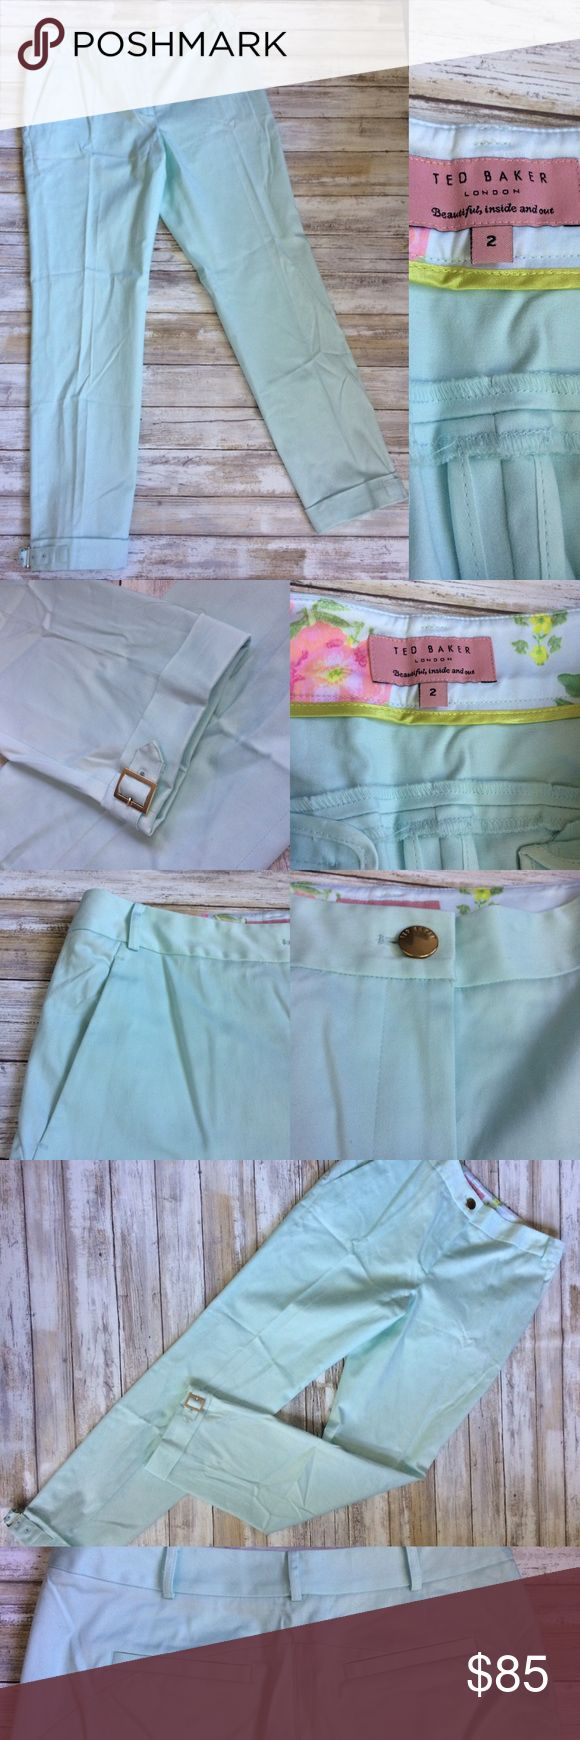 "Ted Baker London stretch mint green pants excellent condition women's Ted Baker pants in size 2 (8) Mint green stretch cuffed  Measurements are taken laid flat  Waist across 15.5"" Inseam 28"" Comes from smoke and pet free home  Thank you for looking Ted Baker London Pants Trousers"